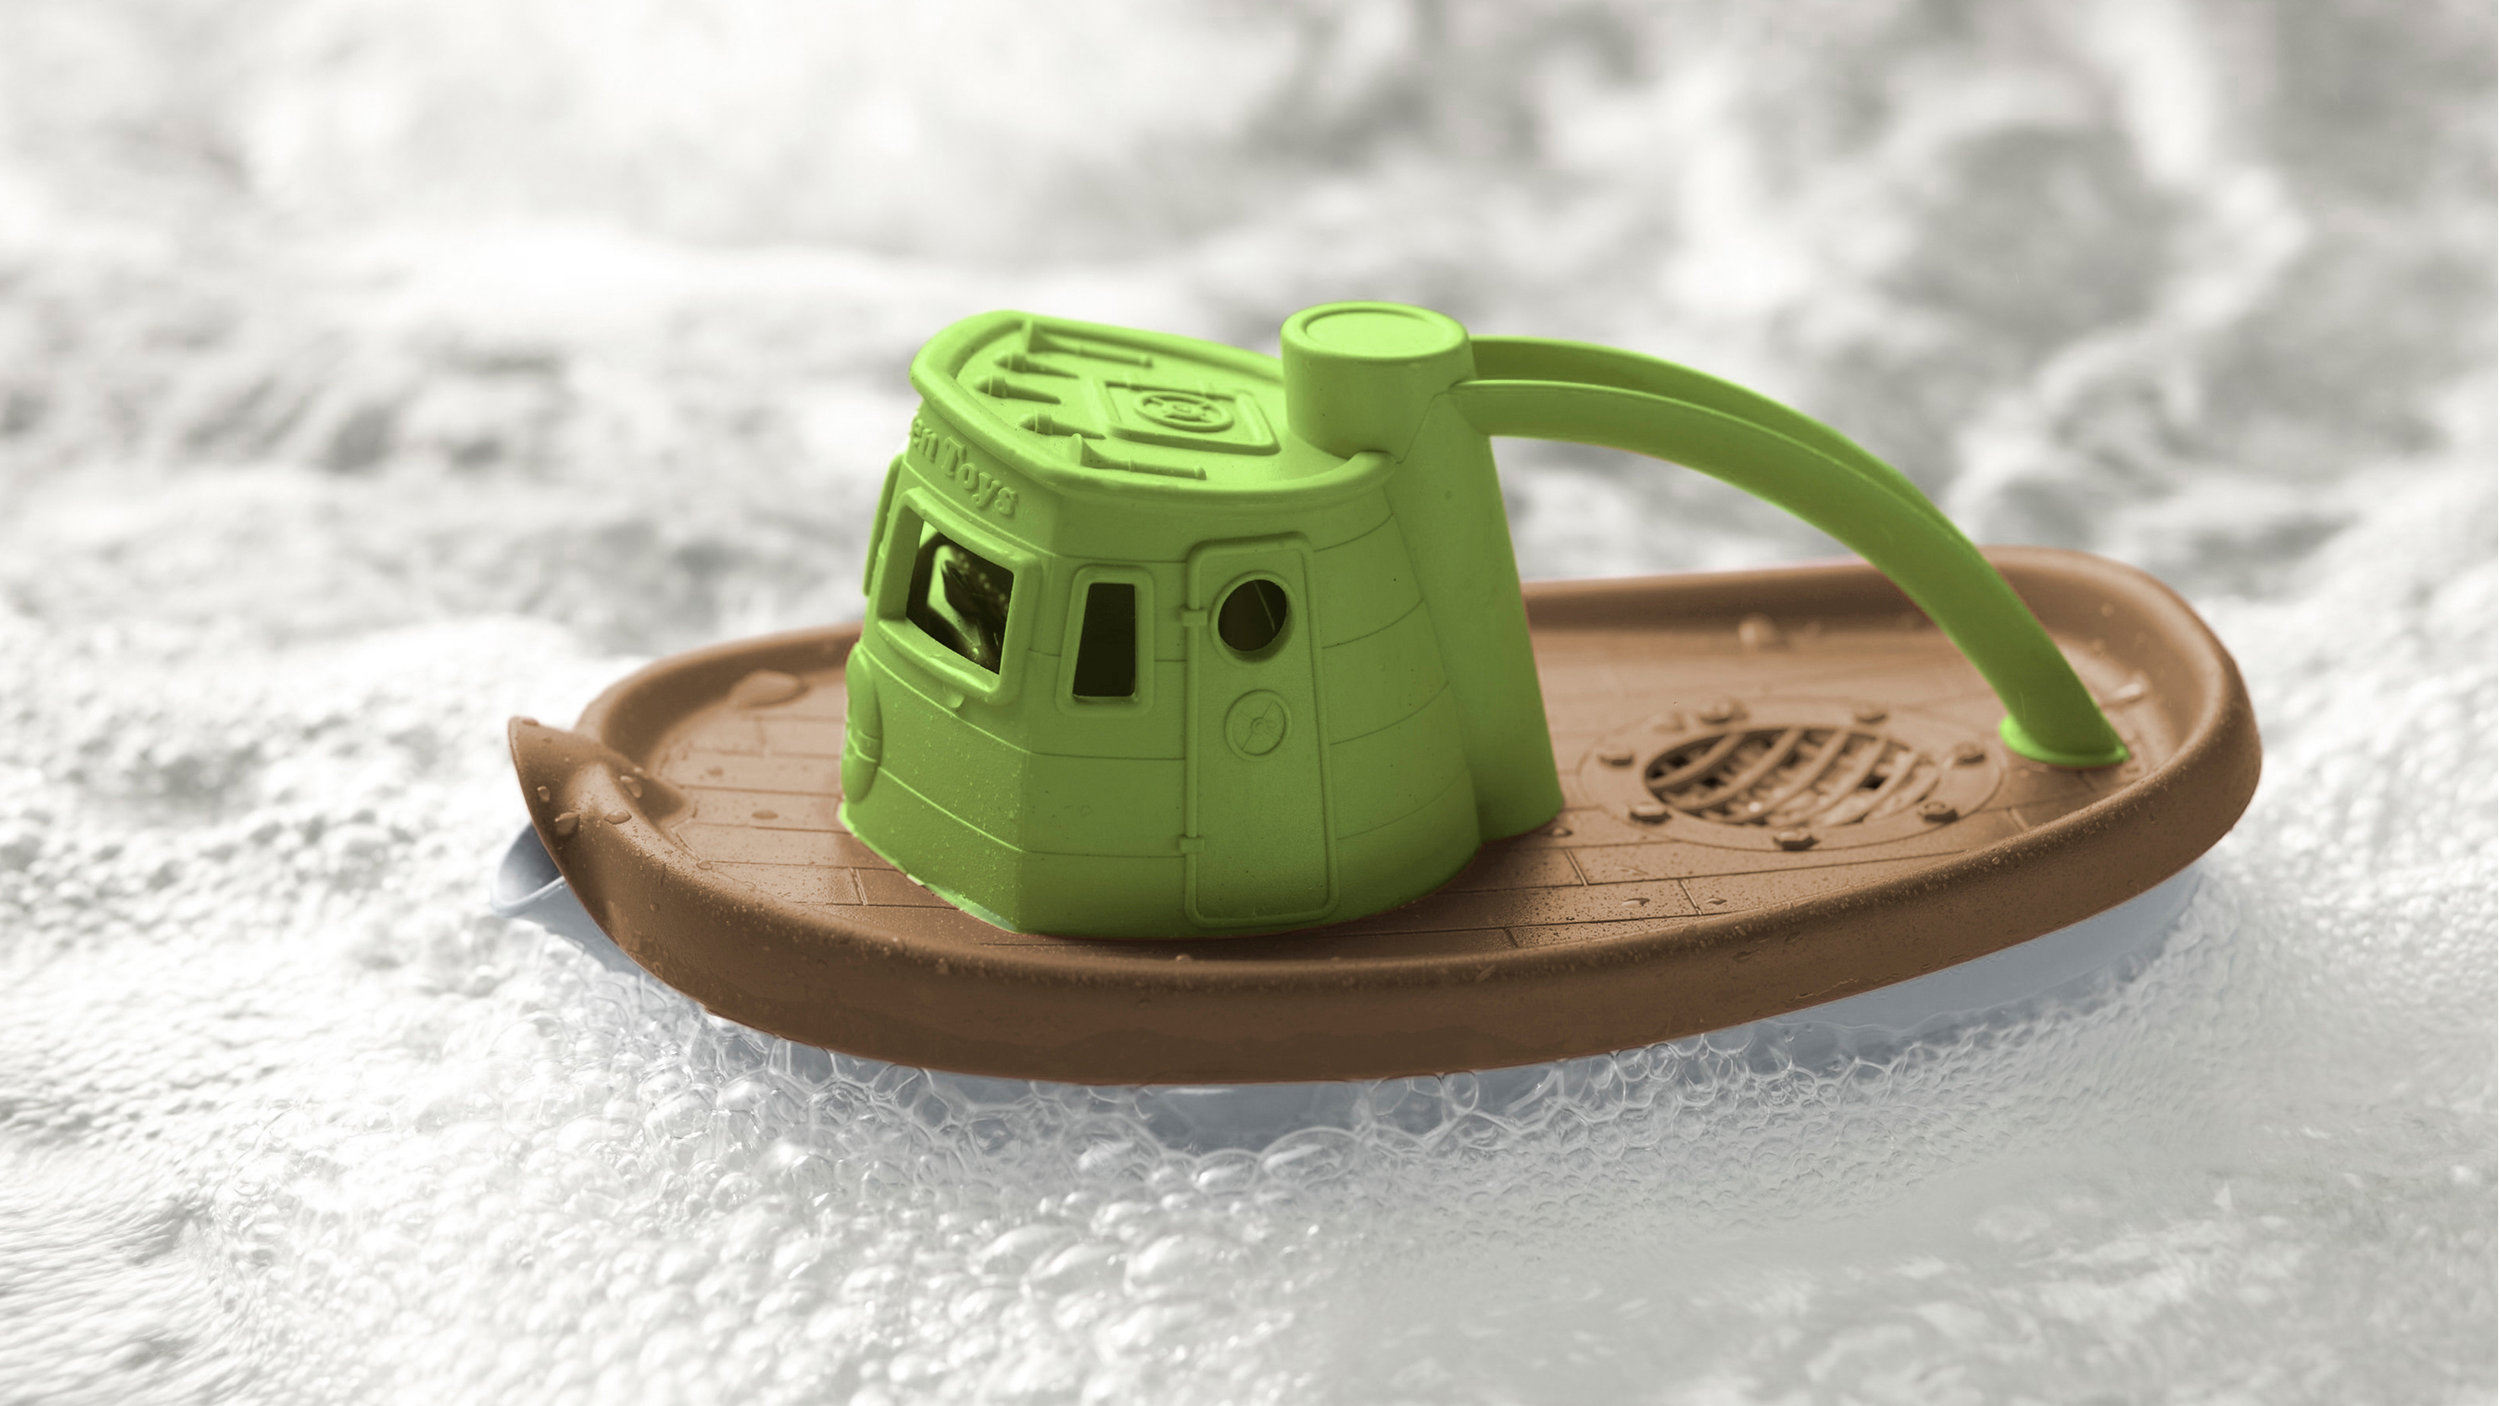 GREEN TOYS    milk jugs into meaning